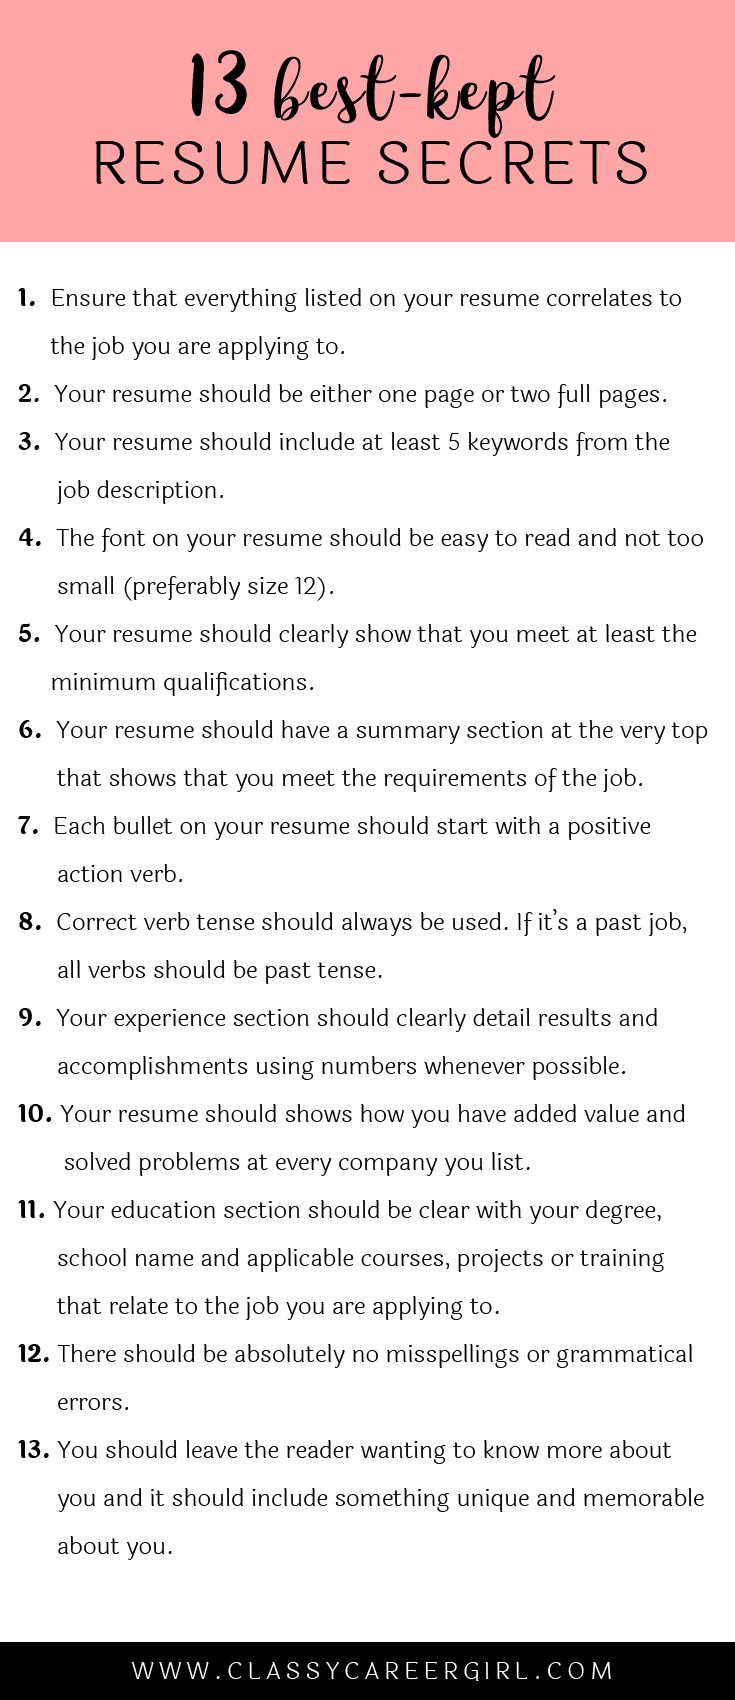 Picnictoimpeachus  Wonderful  Ideas About Resume On Pinterest  Cv Format Resume Cv And  With Inspiring Some Hiring Managers Will Toss Your Resume Out If You Dont Know These  With Attractive What Is A Professional Resume Also Police Officer Resume Template In Addition How To Create A Resume Online And Houseman Resume As Well As Sales Manager Resume Samples Additionally Military To Civilian Resume Writing Services From Pinterestcom With Picnictoimpeachus  Inspiring  Ideas About Resume On Pinterest  Cv Format Resume Cv And  With Attractive Some Hiring Managers Will Toss Your Resume Out If You Dont Know These  And Wonderful What Is A Professional Resume Also Police Officer Resume Template In Addition How To Create A Resume Online From Pinterestcom